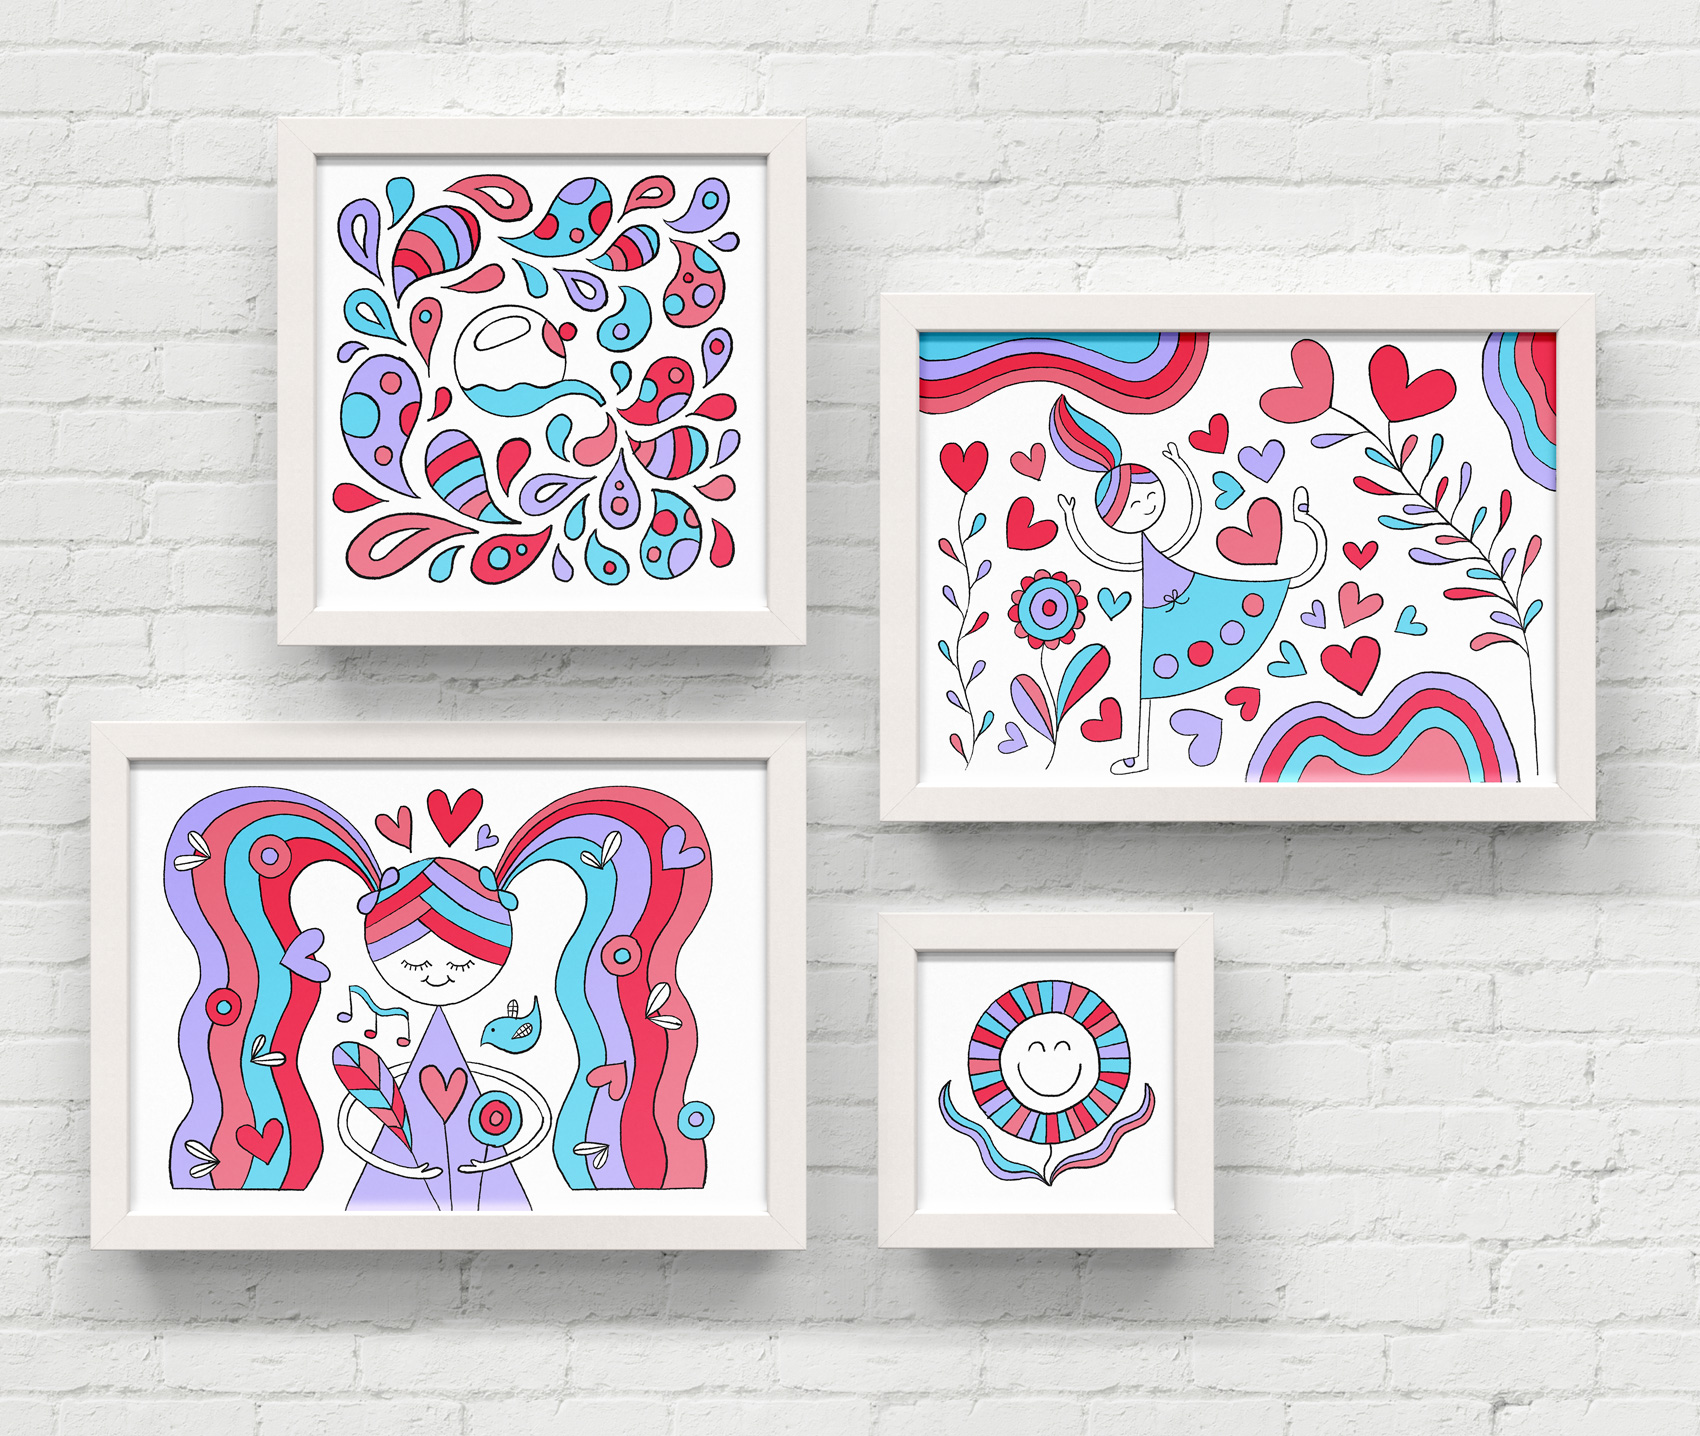 Series of hand drawn illustrations in rainbow colors: a watering can splashing droplets of water, a girl running through a flower heart flurry, a girl with pigtails holding a bouquet, and a happy flower face.